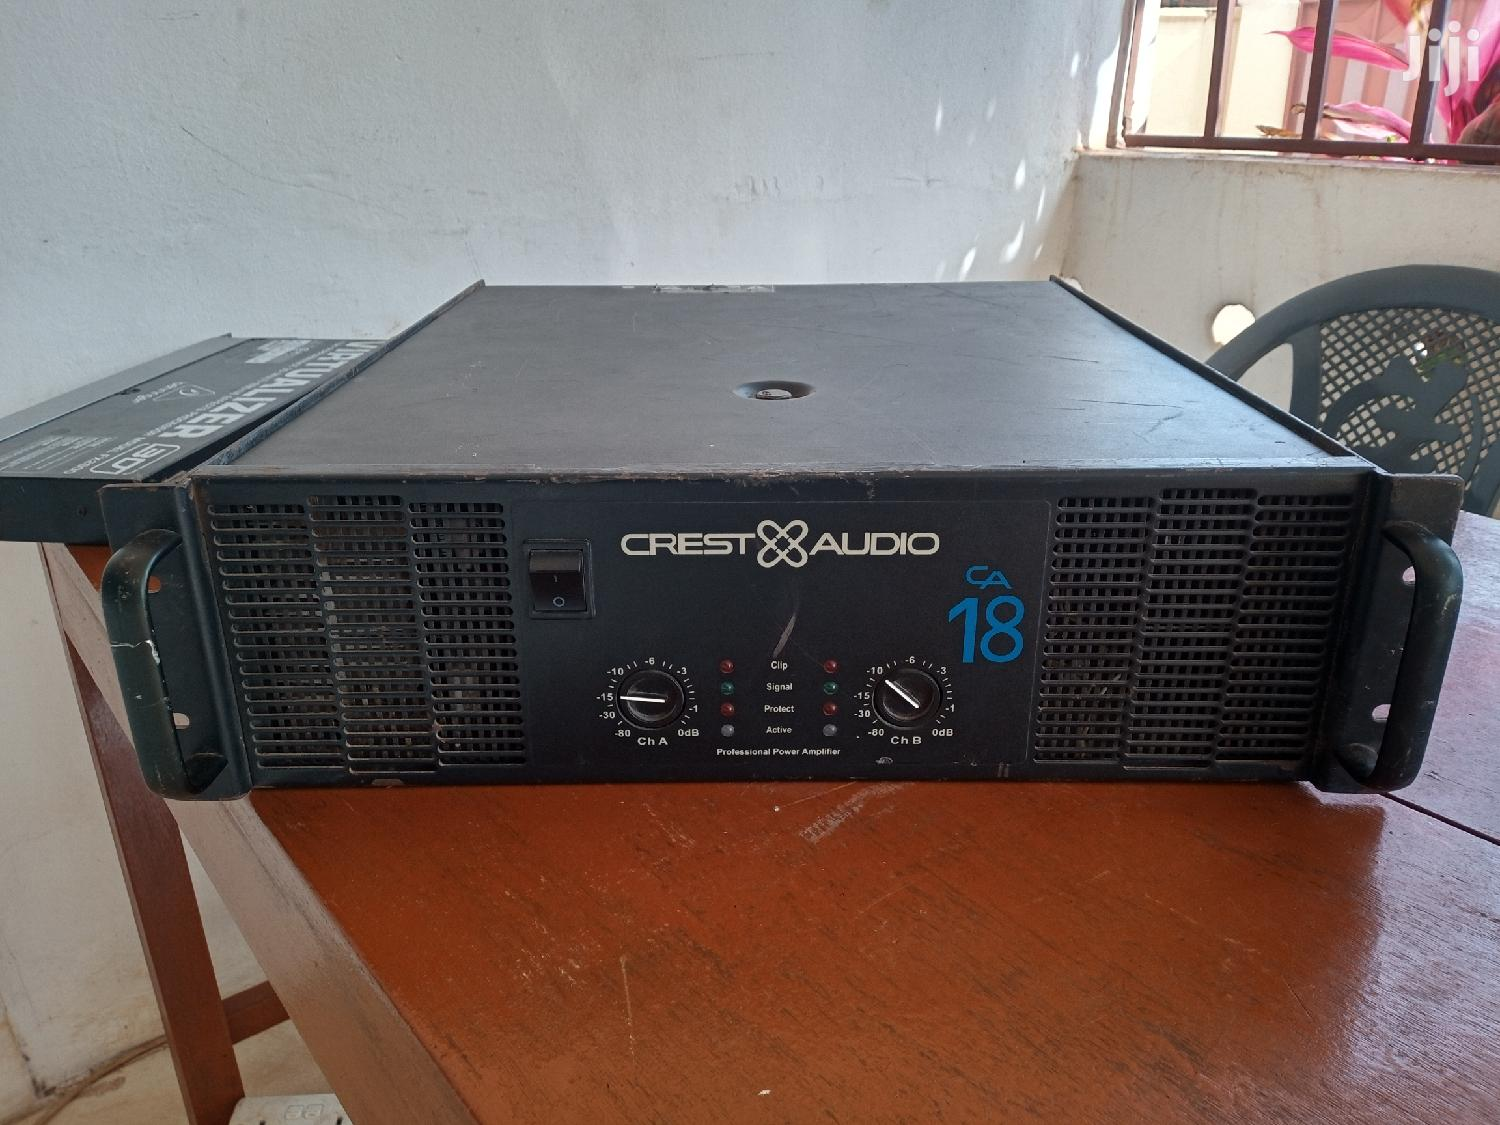 Power Amp And Virtualizer